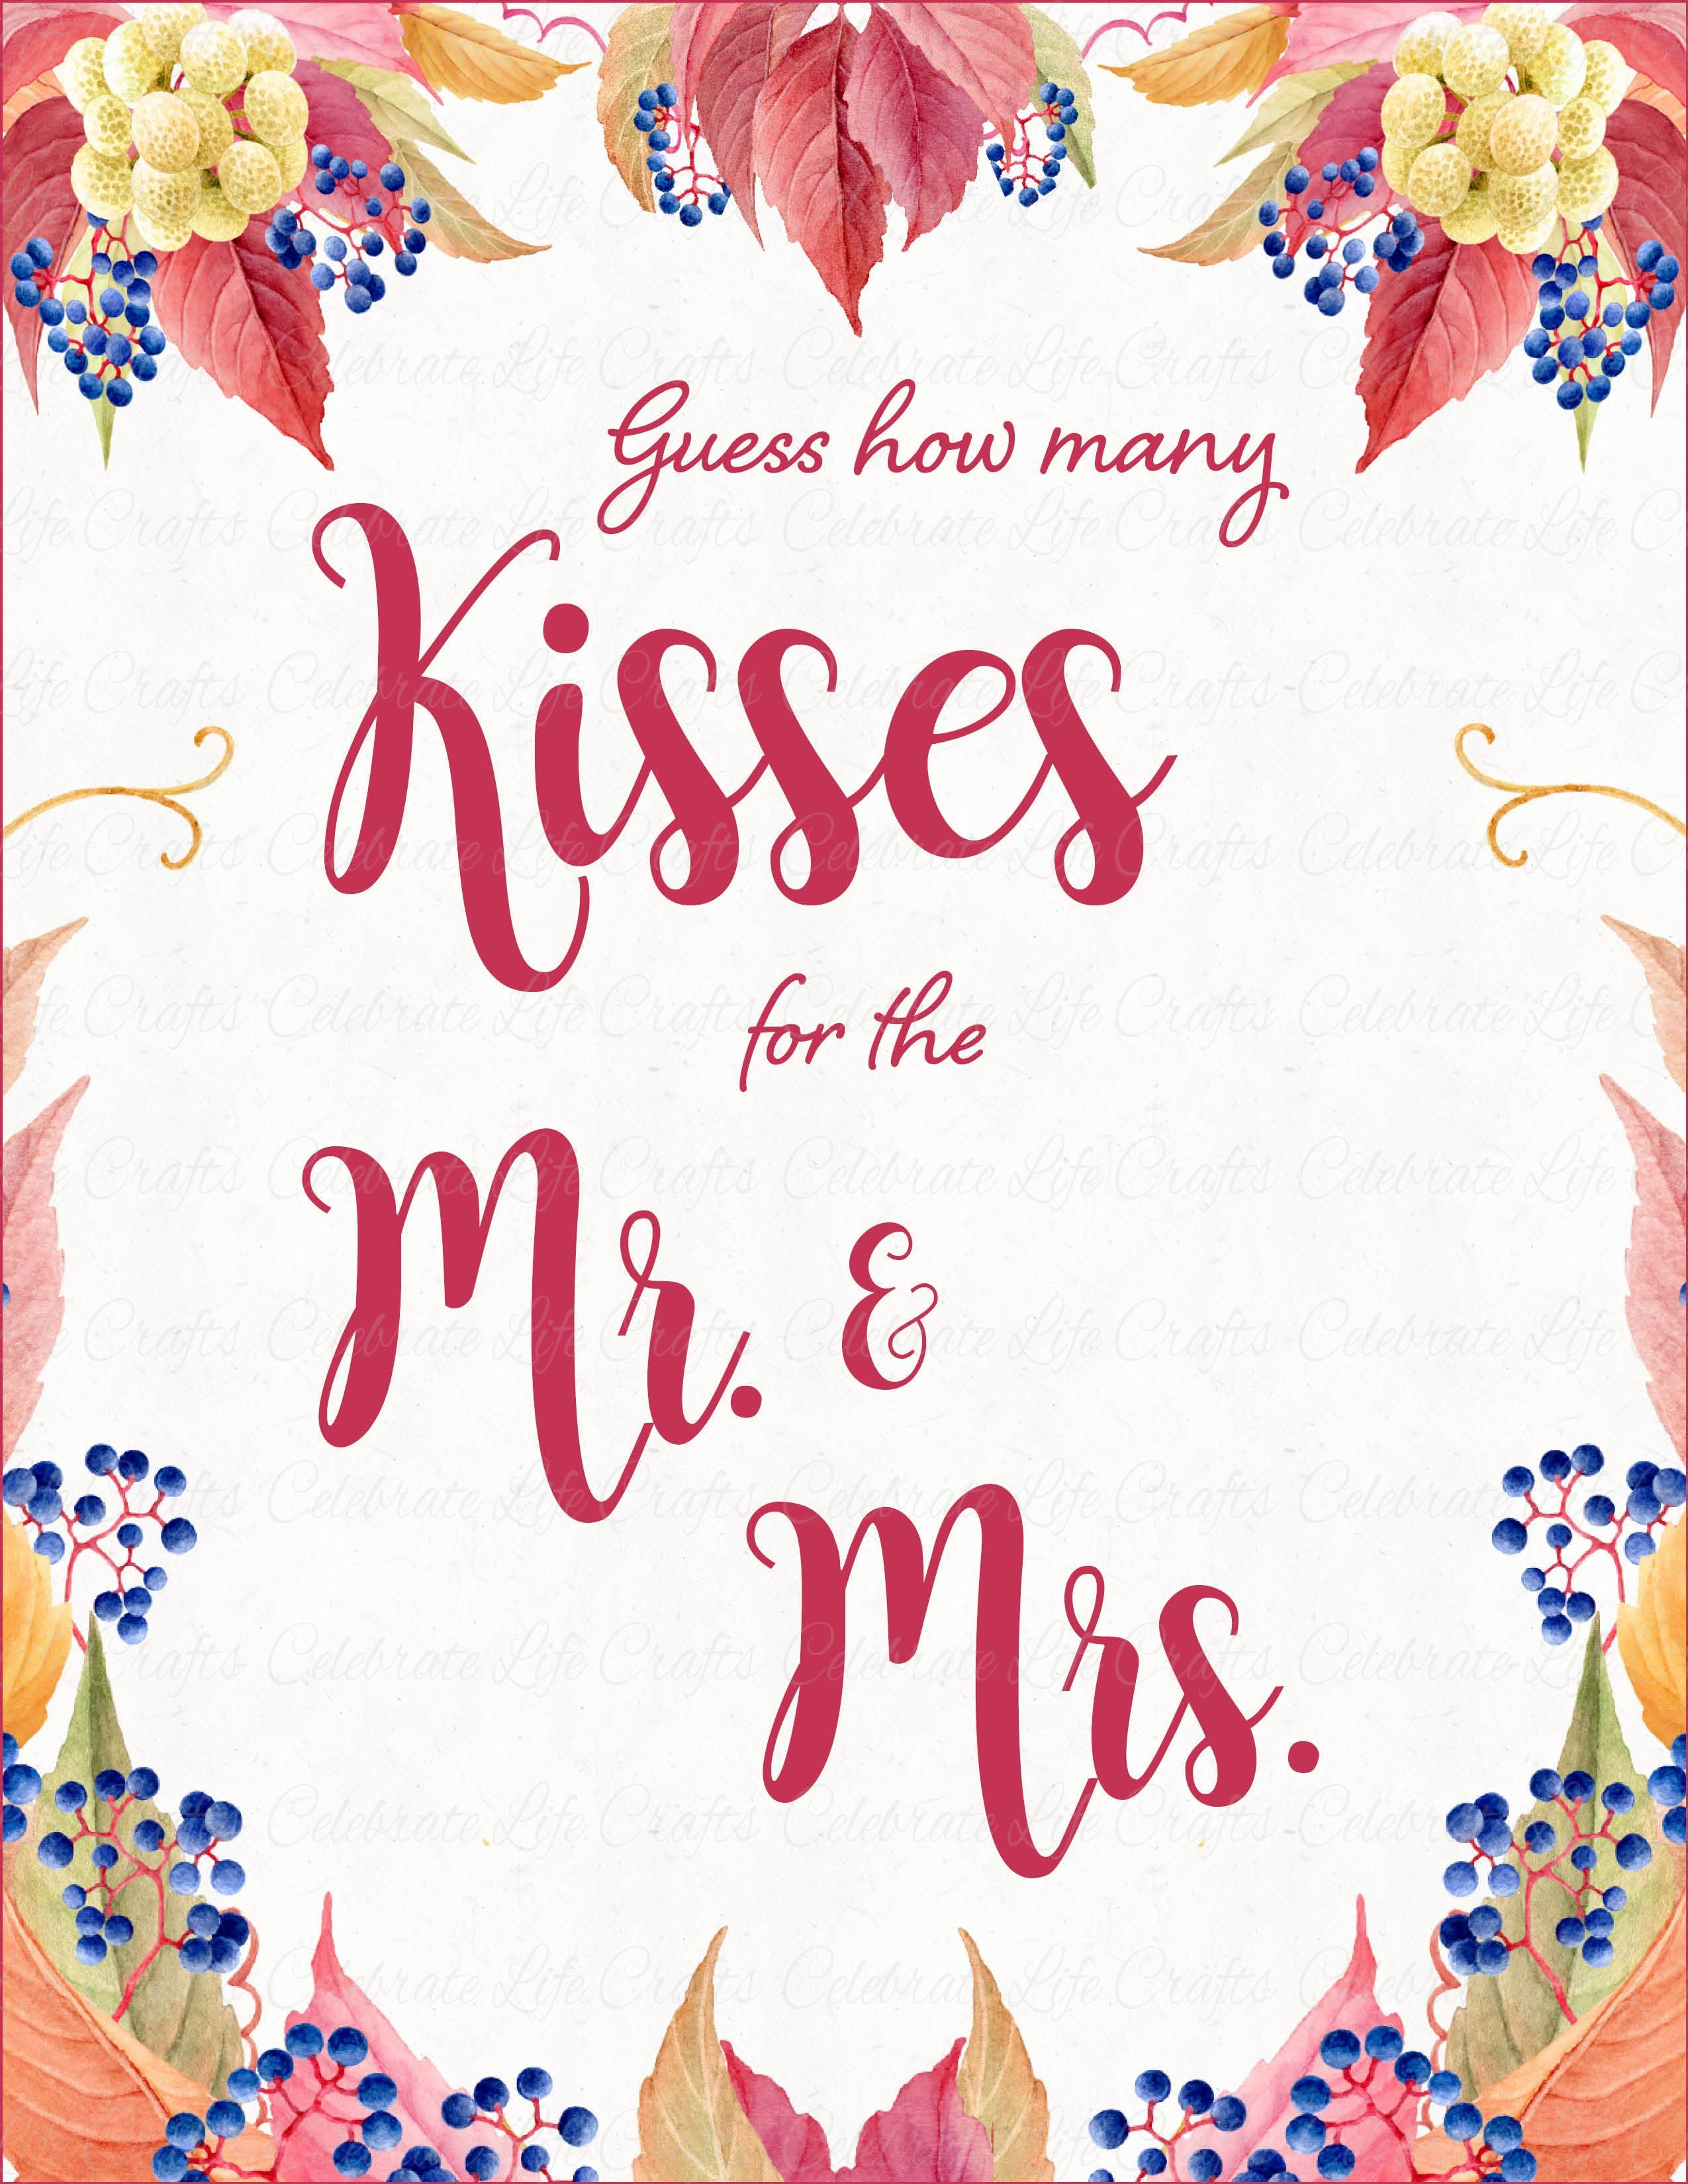 graphic relating to Guess Who Cards Printable named How Innumerable Kisses Marriage ceremony Reception Signal and Guessing